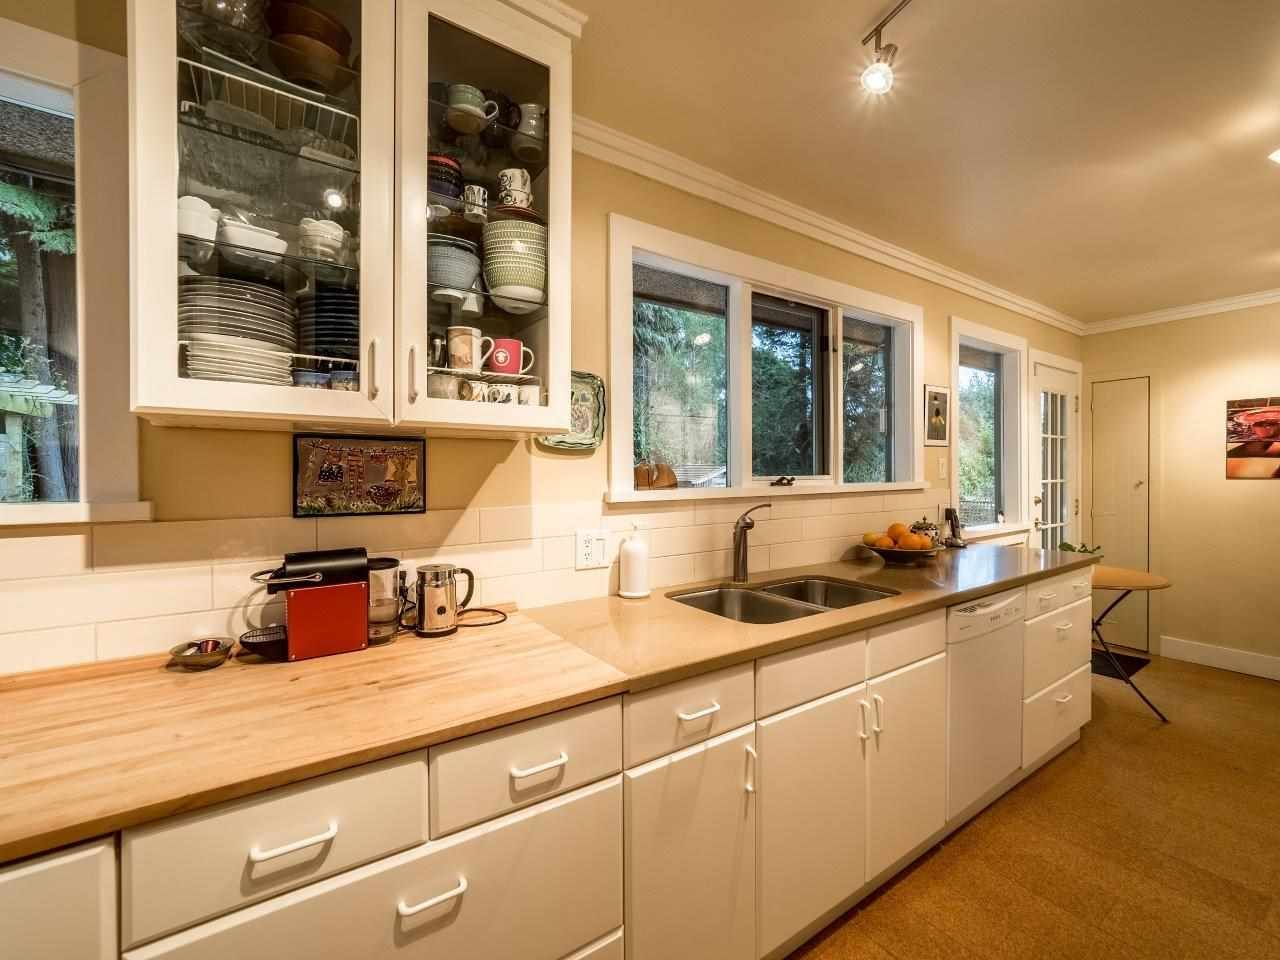 Photo 7: Photos: 3322 WAYNE Drive in North Vancouver: Delbrook House for sale : MLS®# R2045446